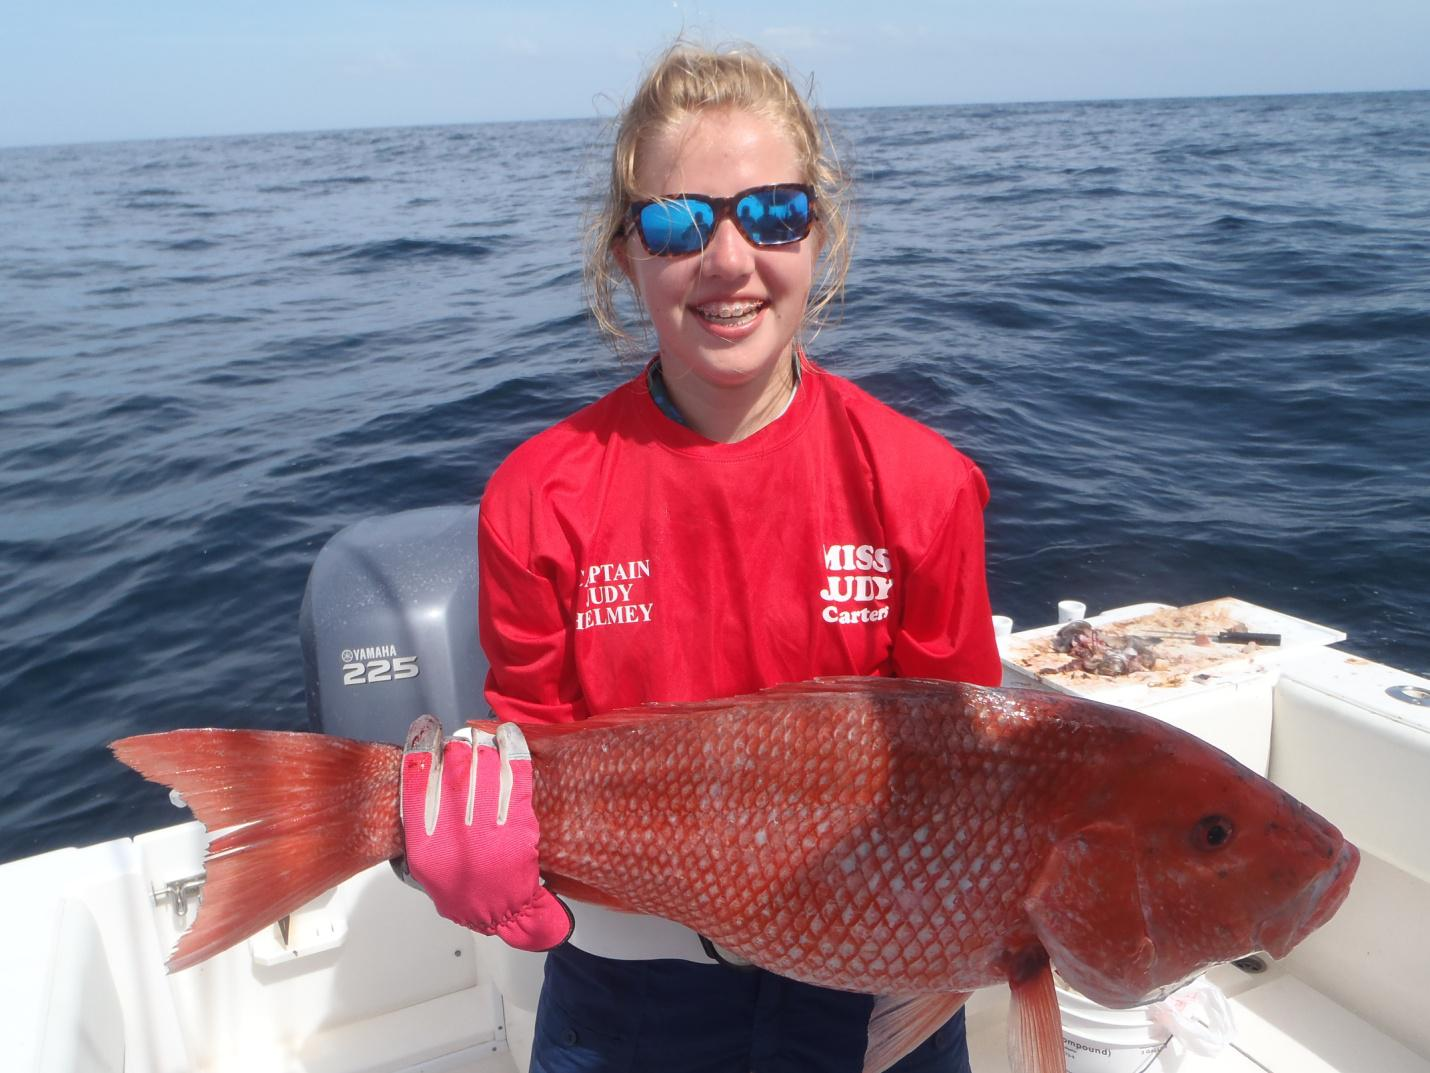 Capt judy offshore fishing report may 1 2017 coastal for Southwest michigan fishing report